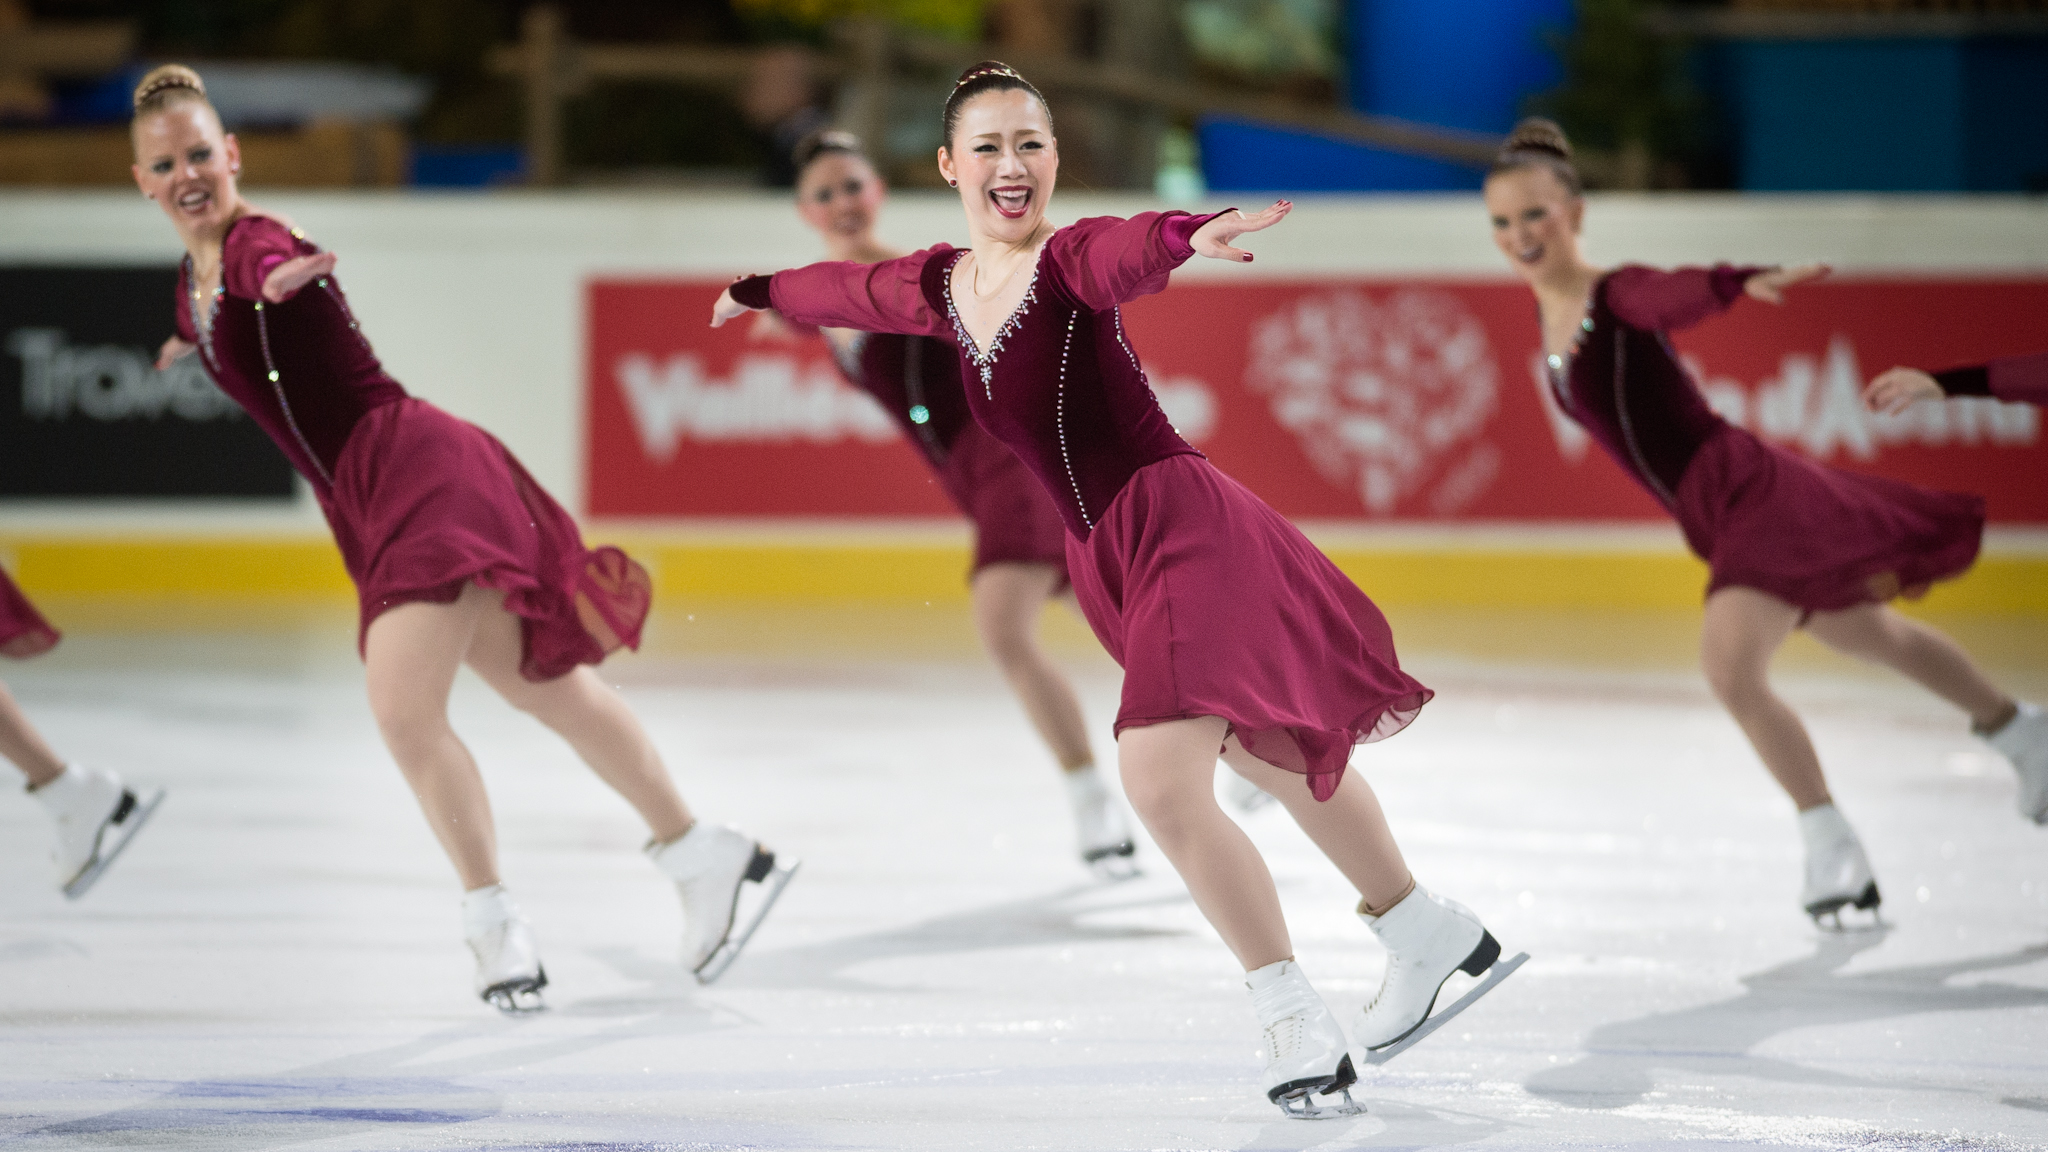 Can Synchronized Skating Finally Make the Leap to Olympic Sport?